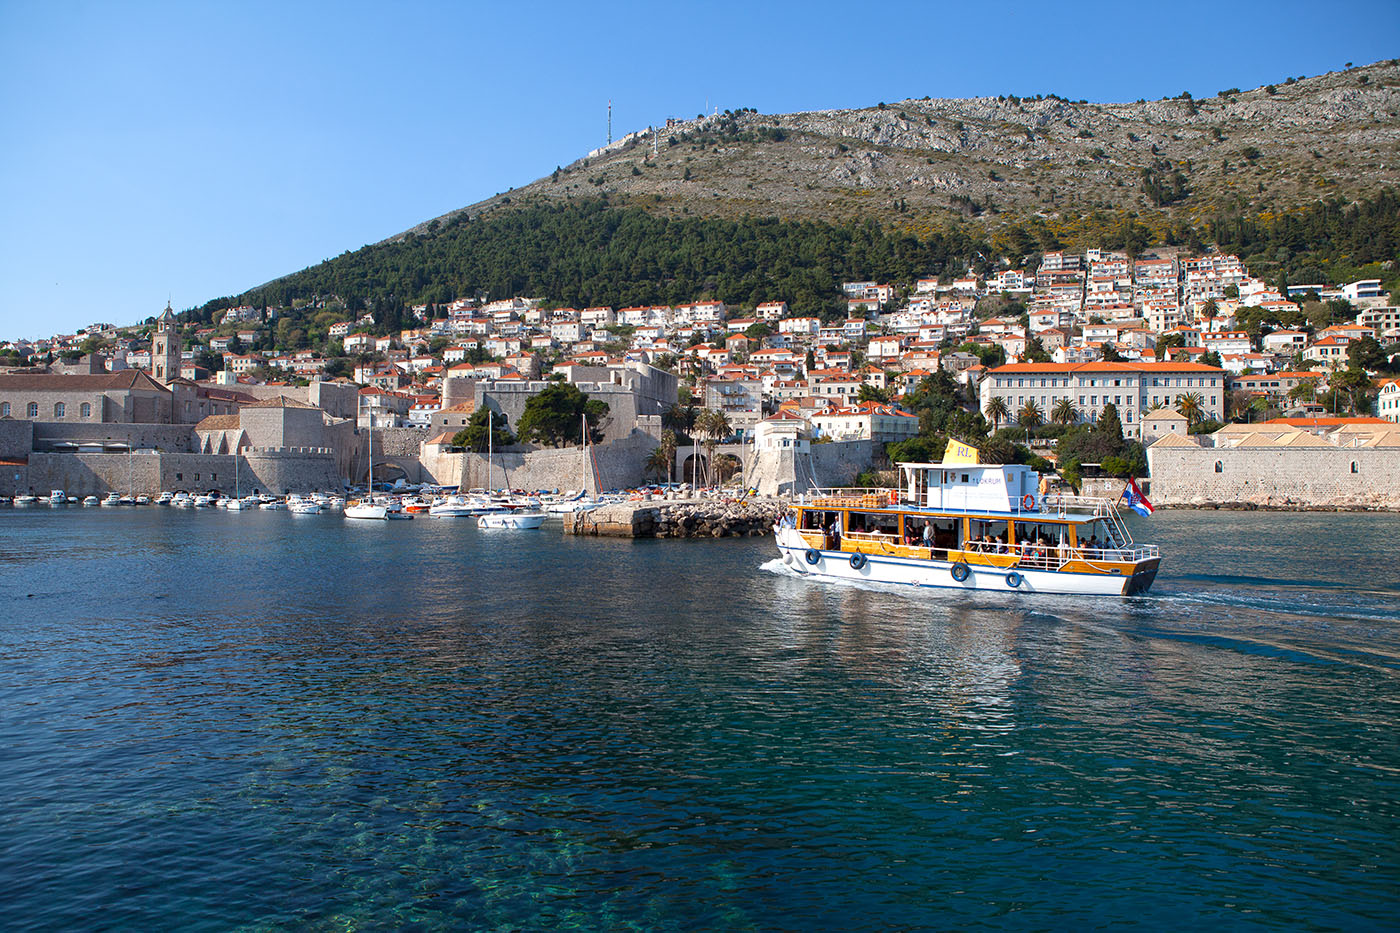 A boat coming into the Dubrovnik Harbour